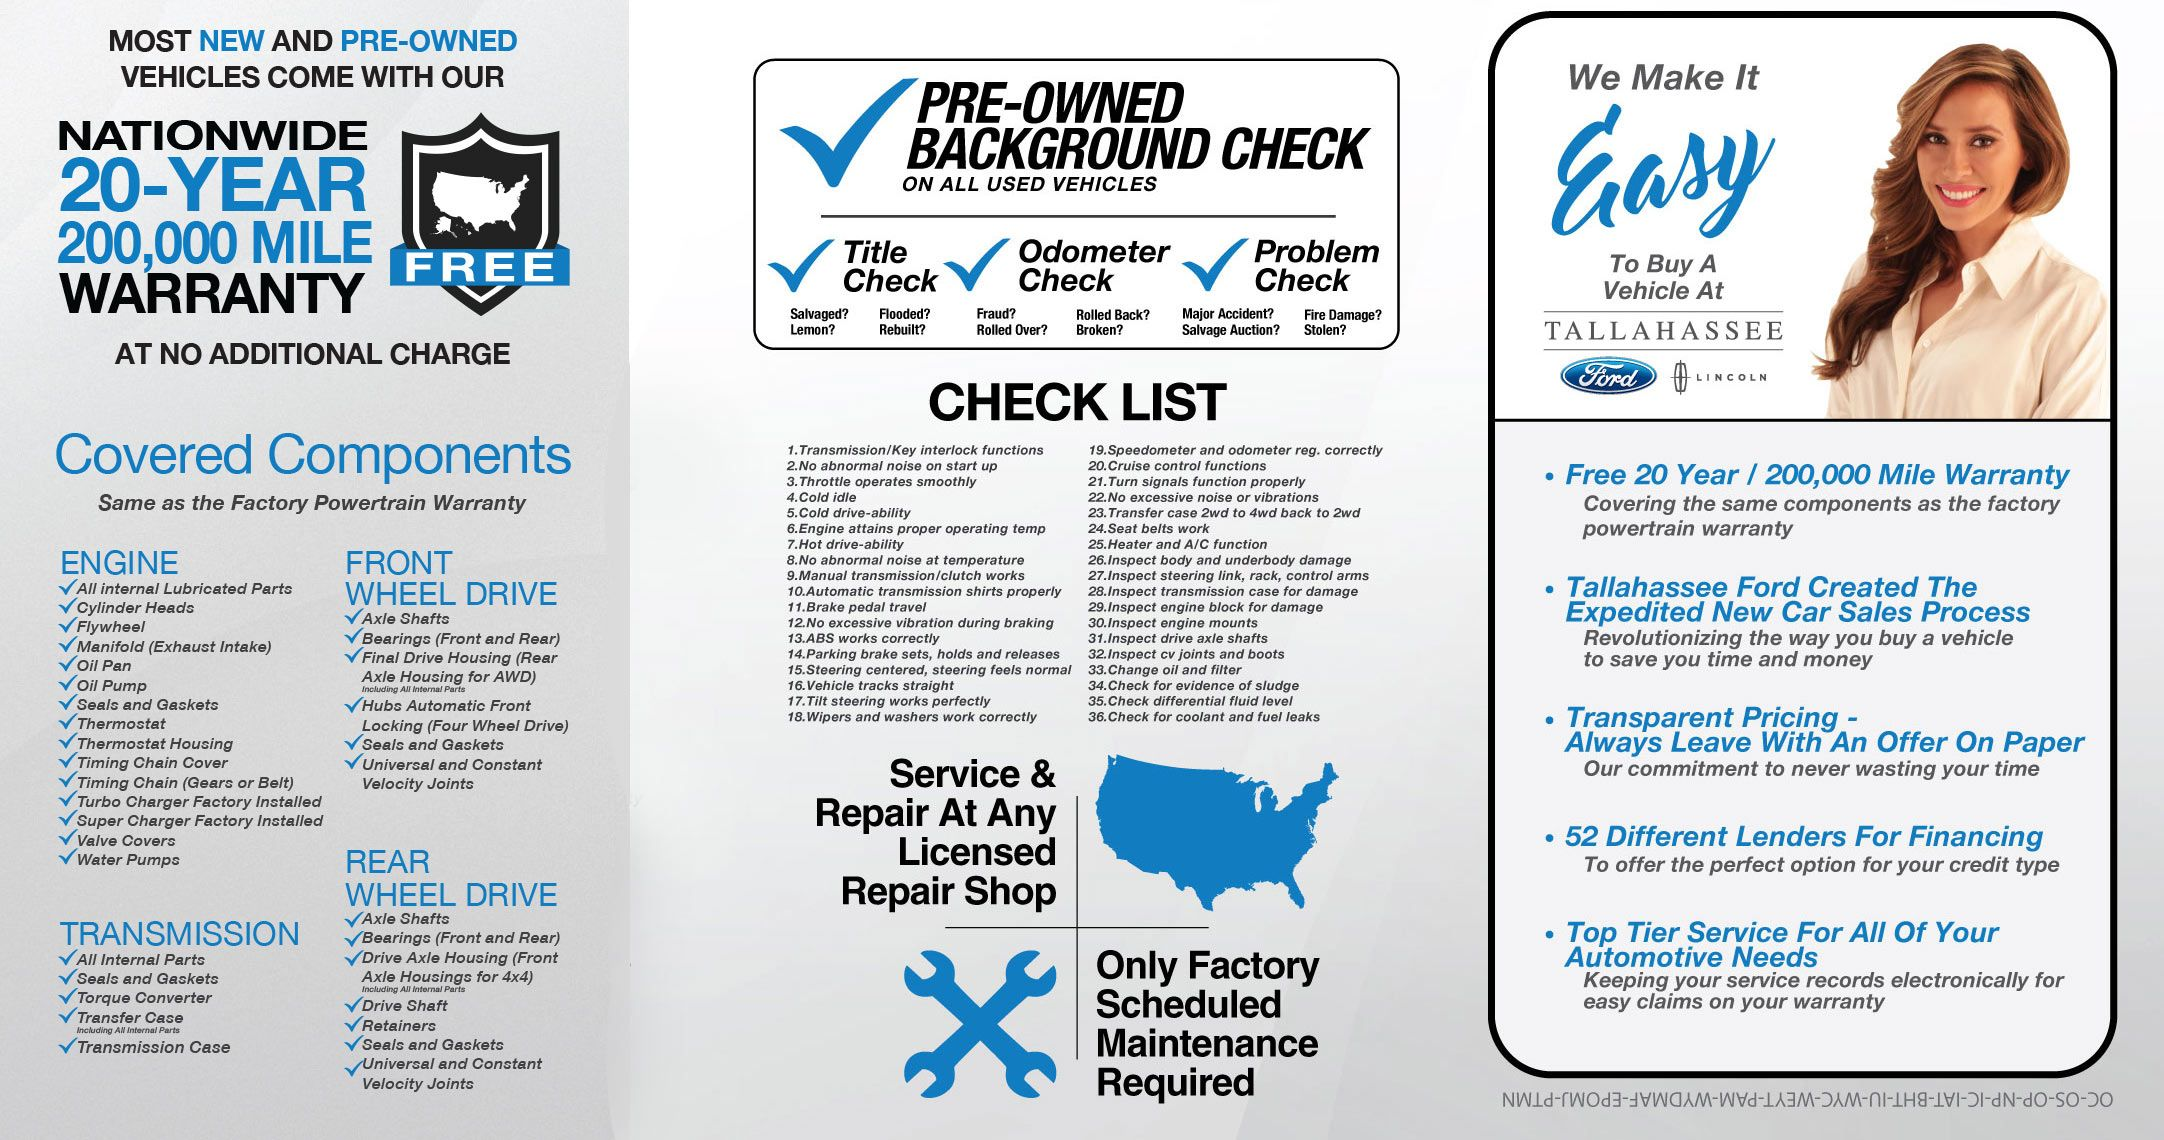 Nationwide 20-Year 200,000 Mile Warranty Free Tallahassee Lincoln Ford Components